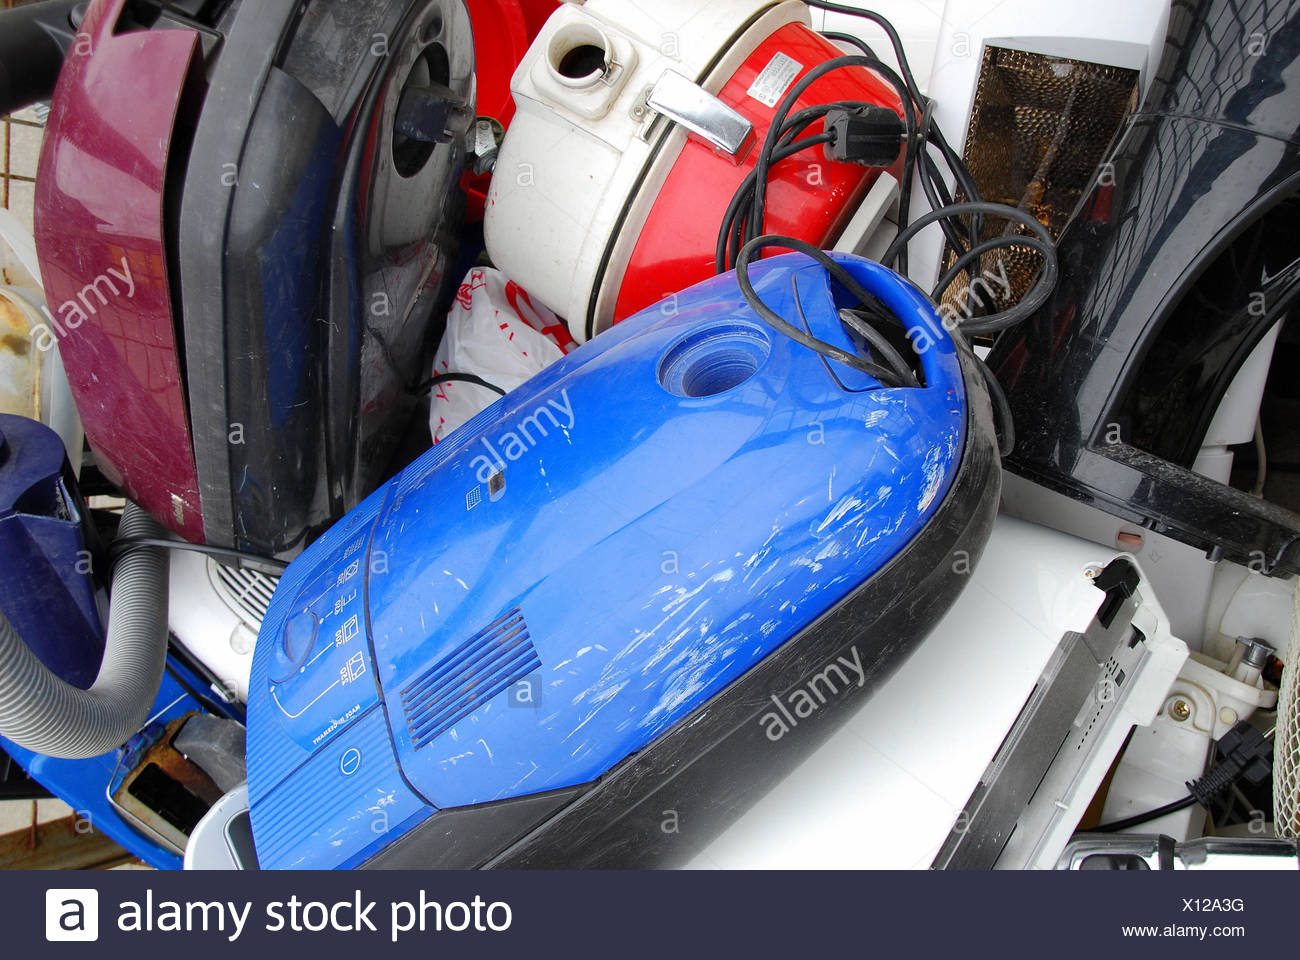 Recycling 080716 16 Stock Photo